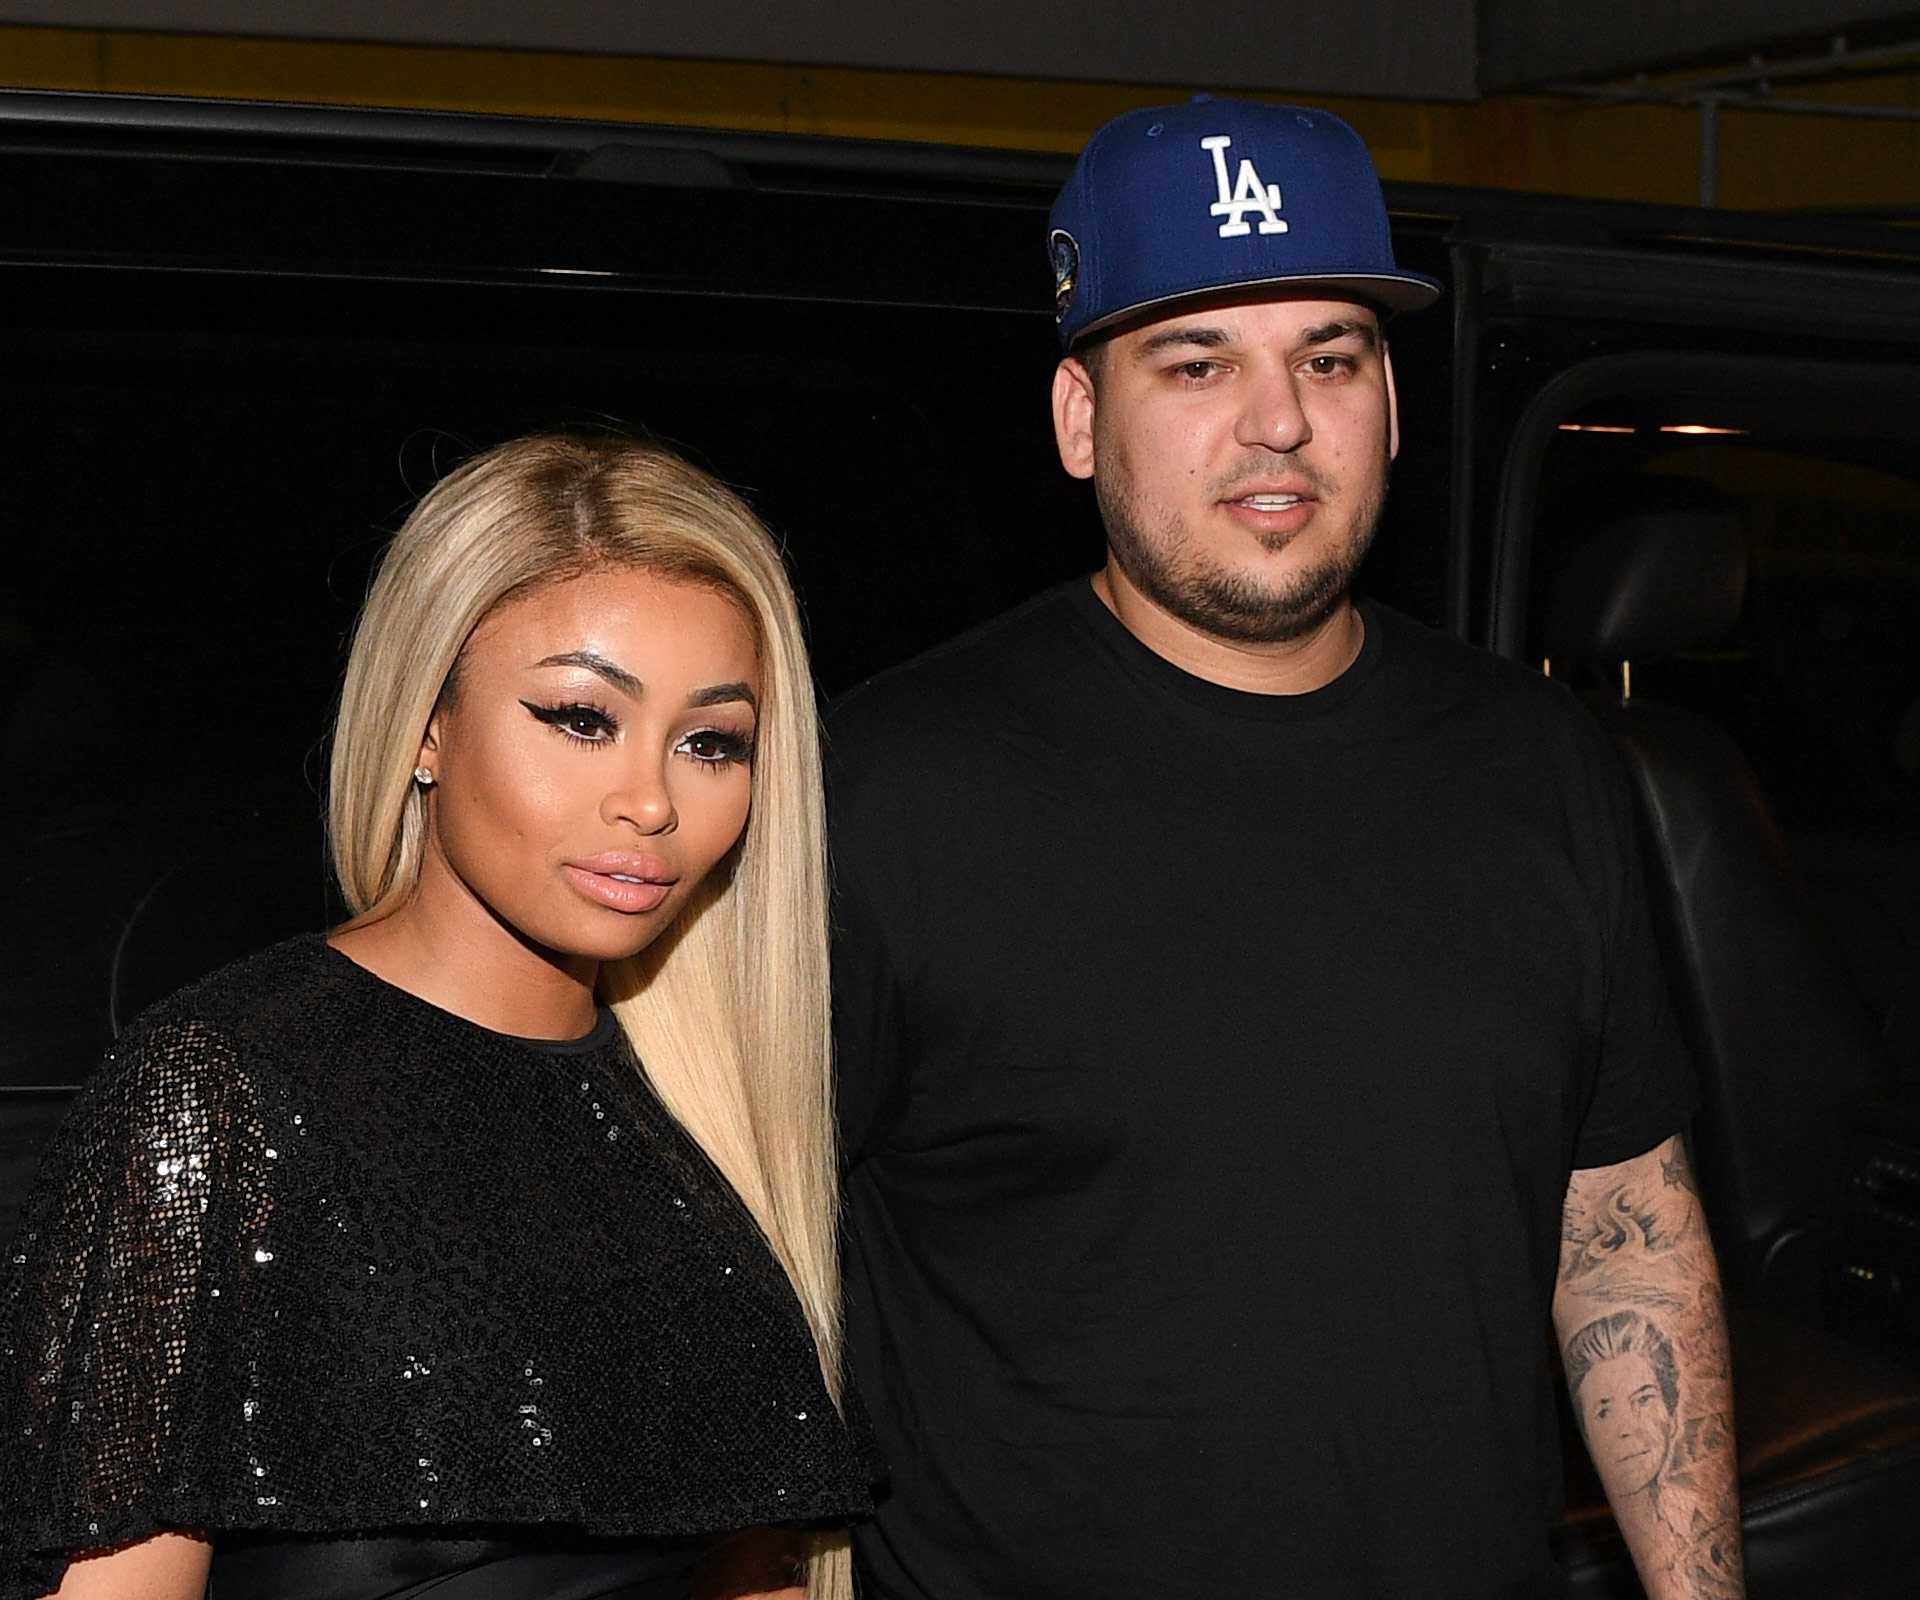 Rob Kardashian and Blac Chyna broke up after huge fight on video